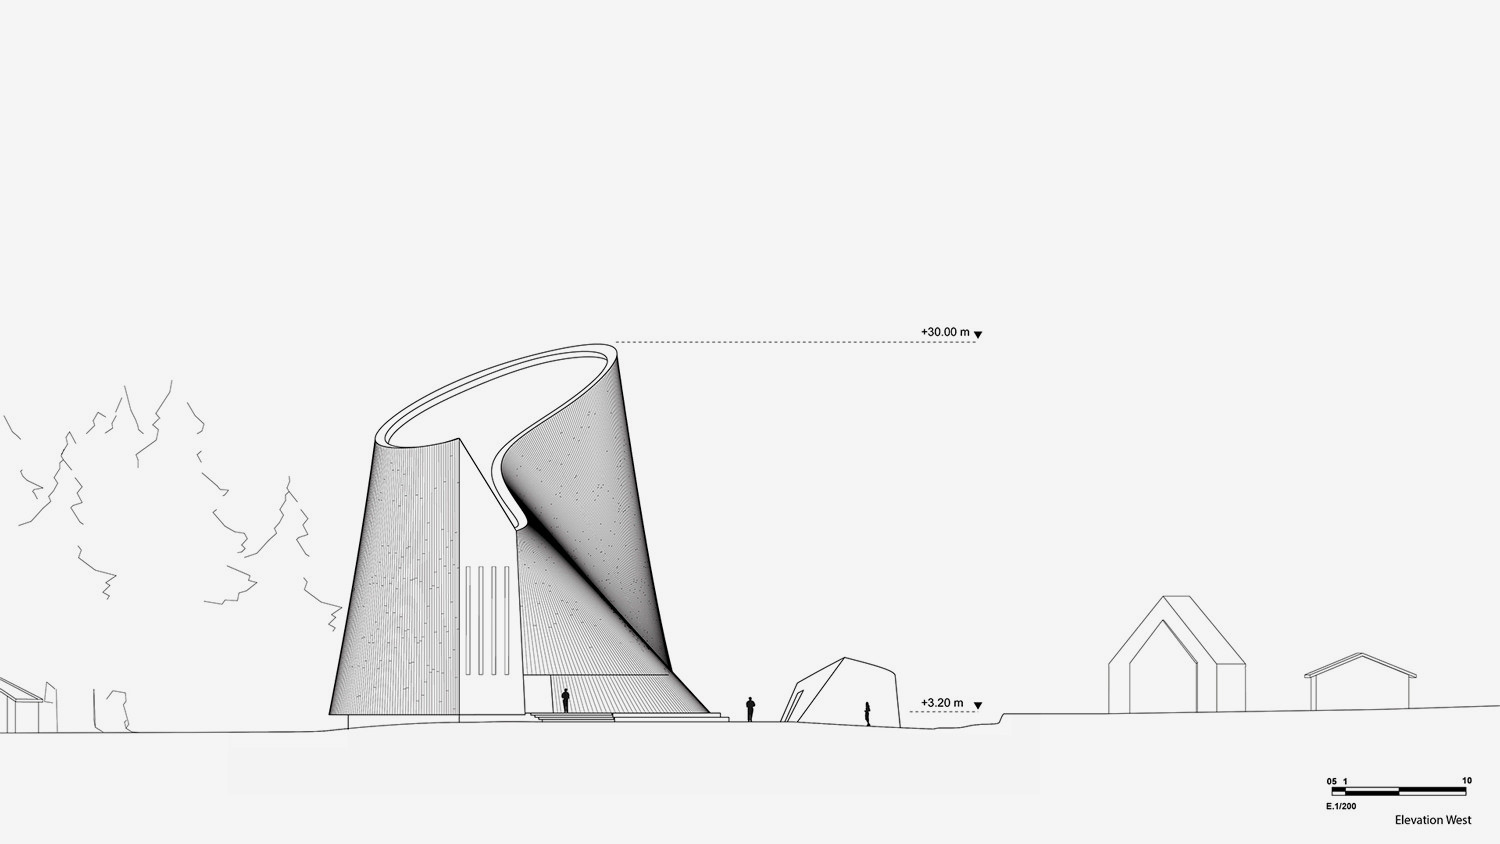 new-valer-church-elevation1-joerg-hugo.jpg